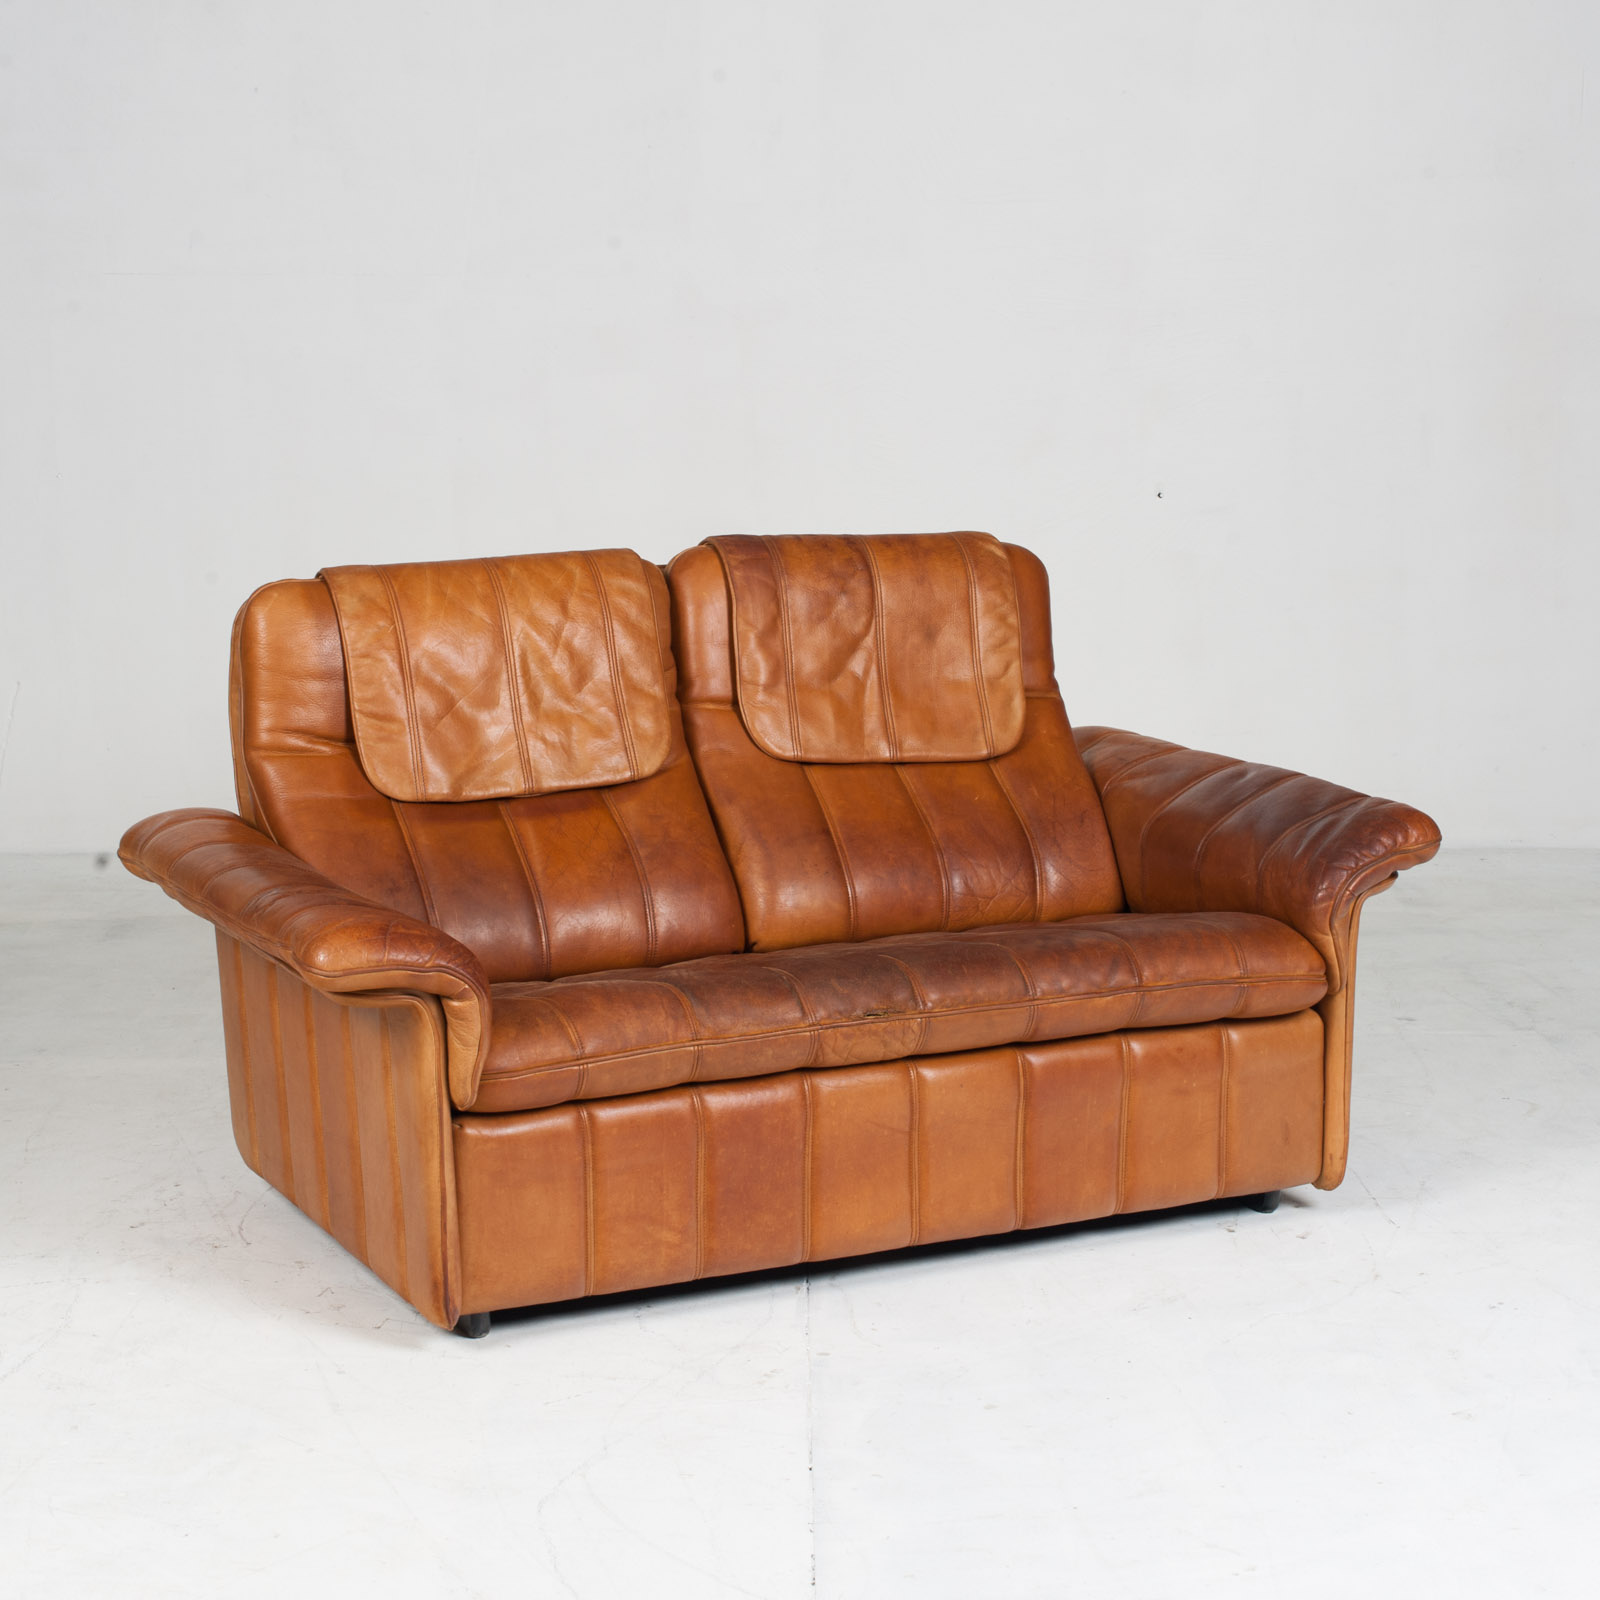 2 Seat Sofa By De Sede In Tan Leather 1970s Switzerland 02